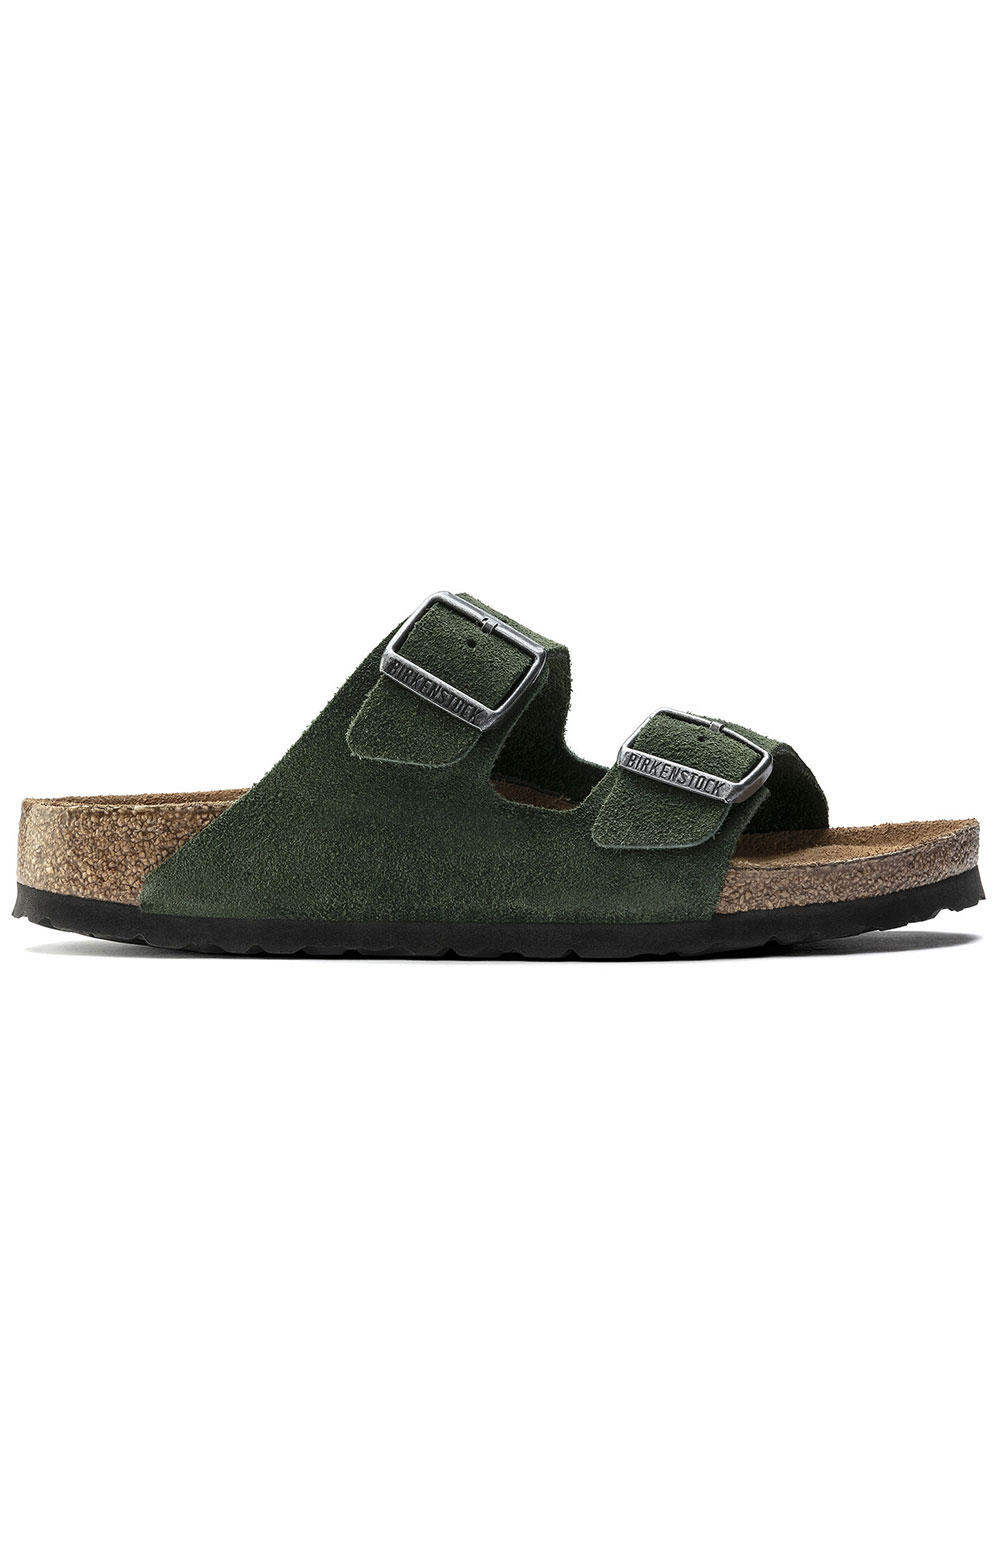 (1018143) Arizona Soft Footbed Sandals - Mountain View Green  4